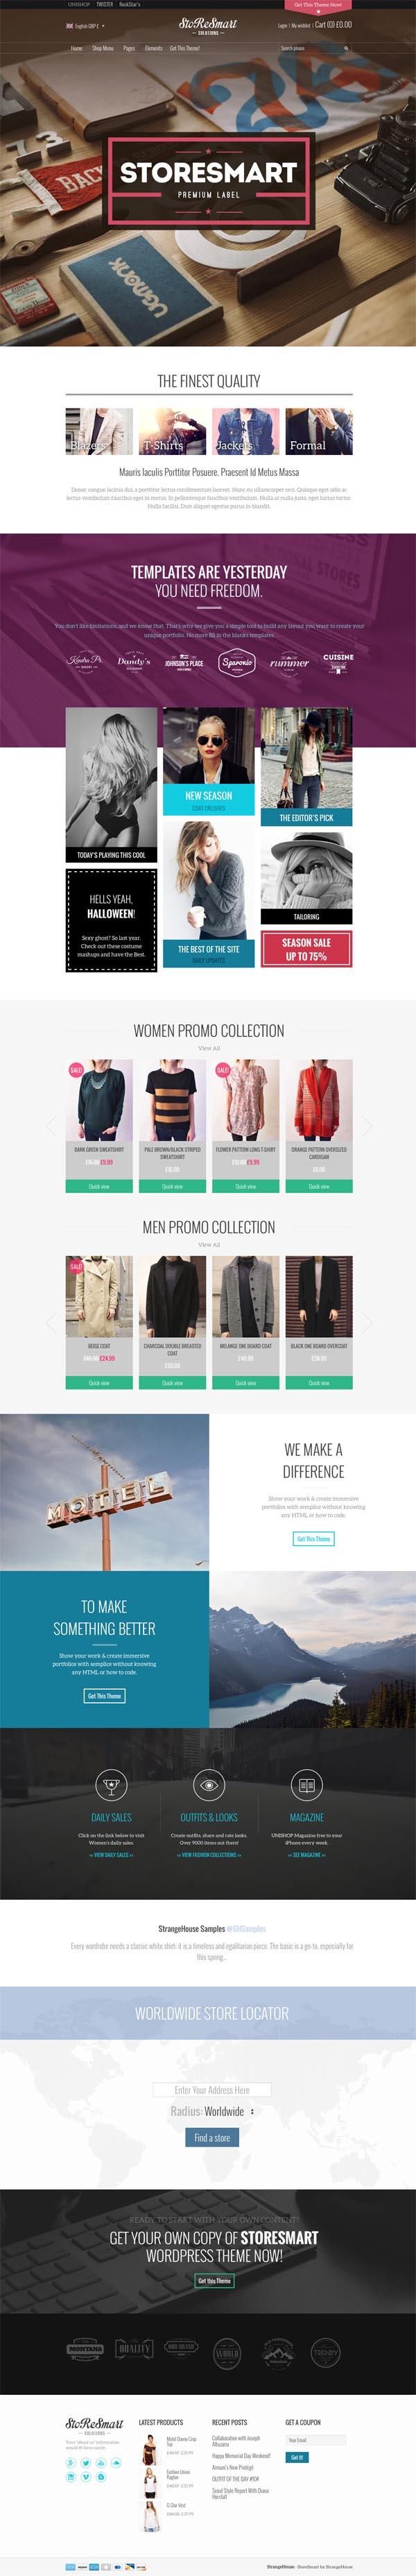 StoReSmart - Multipurpose Ecommerce Theme